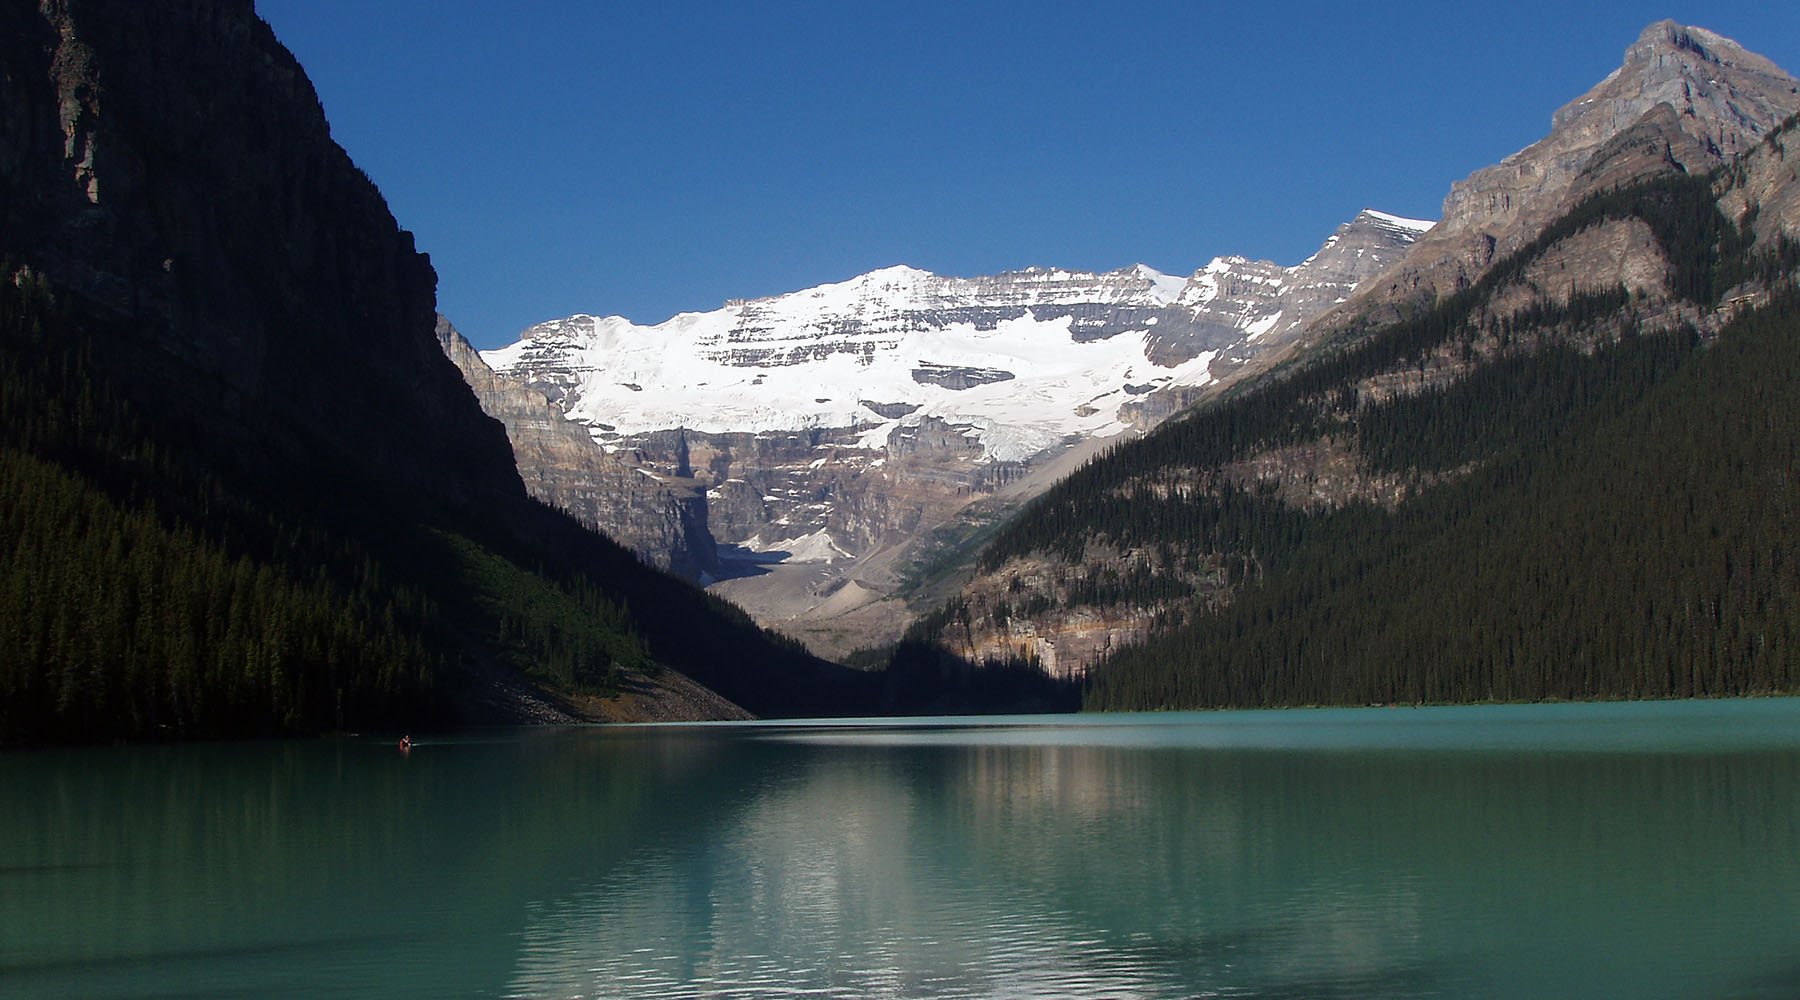 Lake Louise, Rocheuses canadiennes, Chinook voyages, aventure, randonnée, ouest canadien